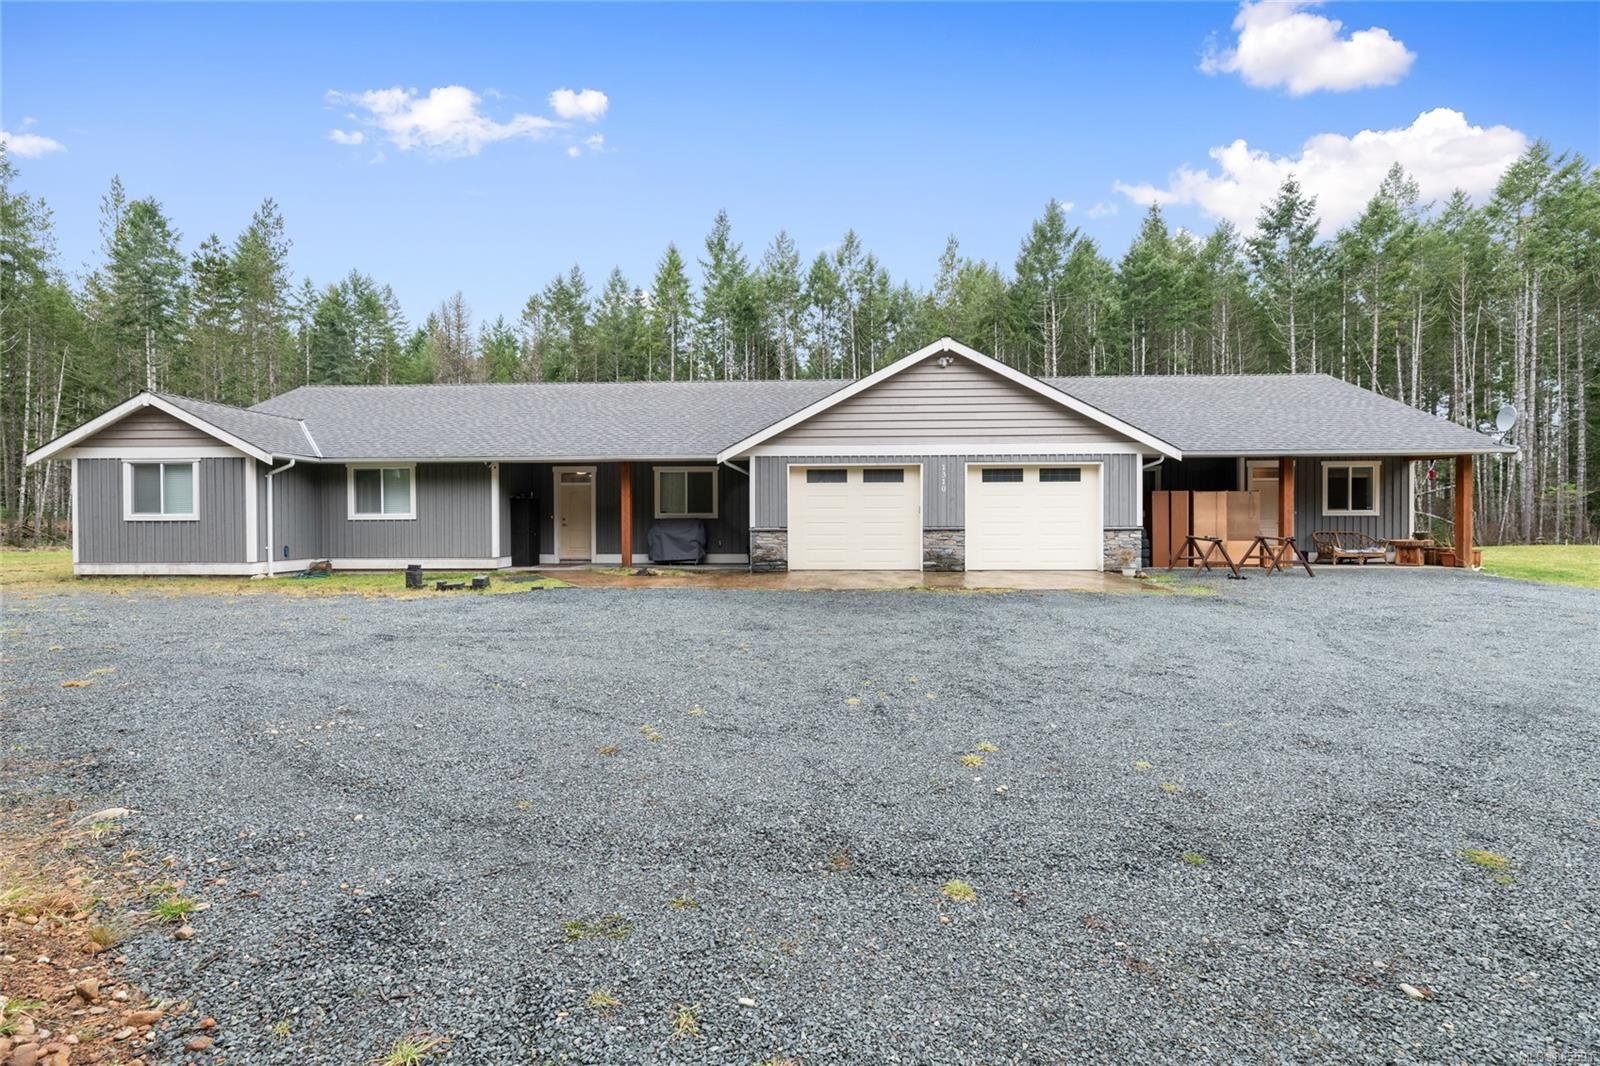 Main Photo: 1310 Dobson Rd in : PQ Errington/Coombs/Hilliers House for sale (Parksville/Qualicum)  : MLS®# 865591